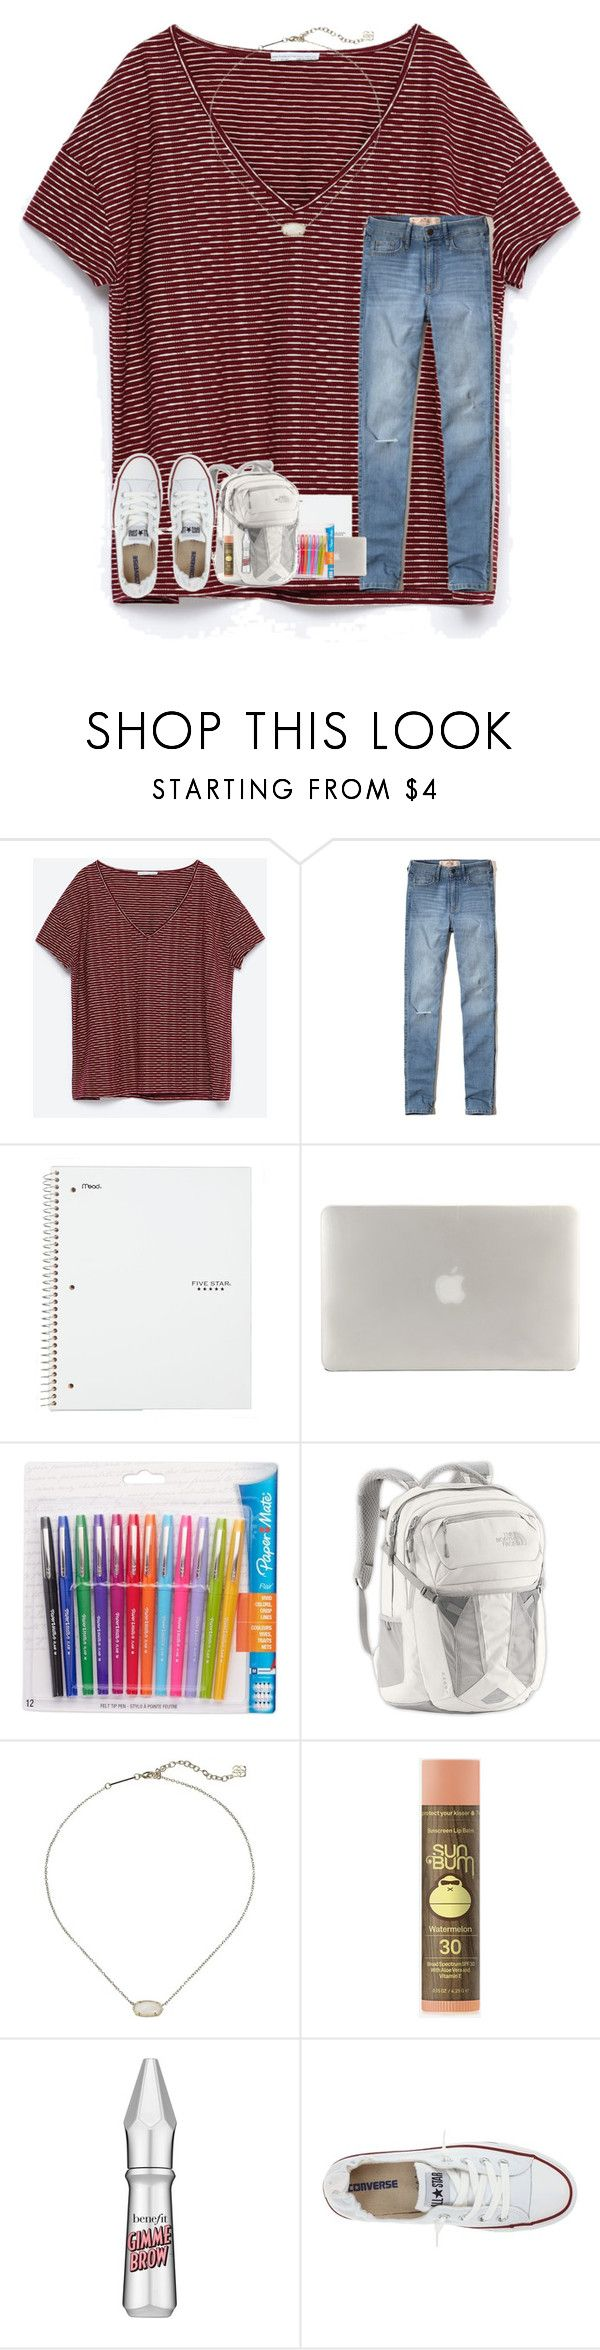 """""""qotd in d"""" by rileykleiin ❤ liked on Polyvore featuring Zara, Hollister Co., Five Star, Tucano, Paper Mate, The North Face, Kendra Scott, Sun Bum, Benefit and Converse"""